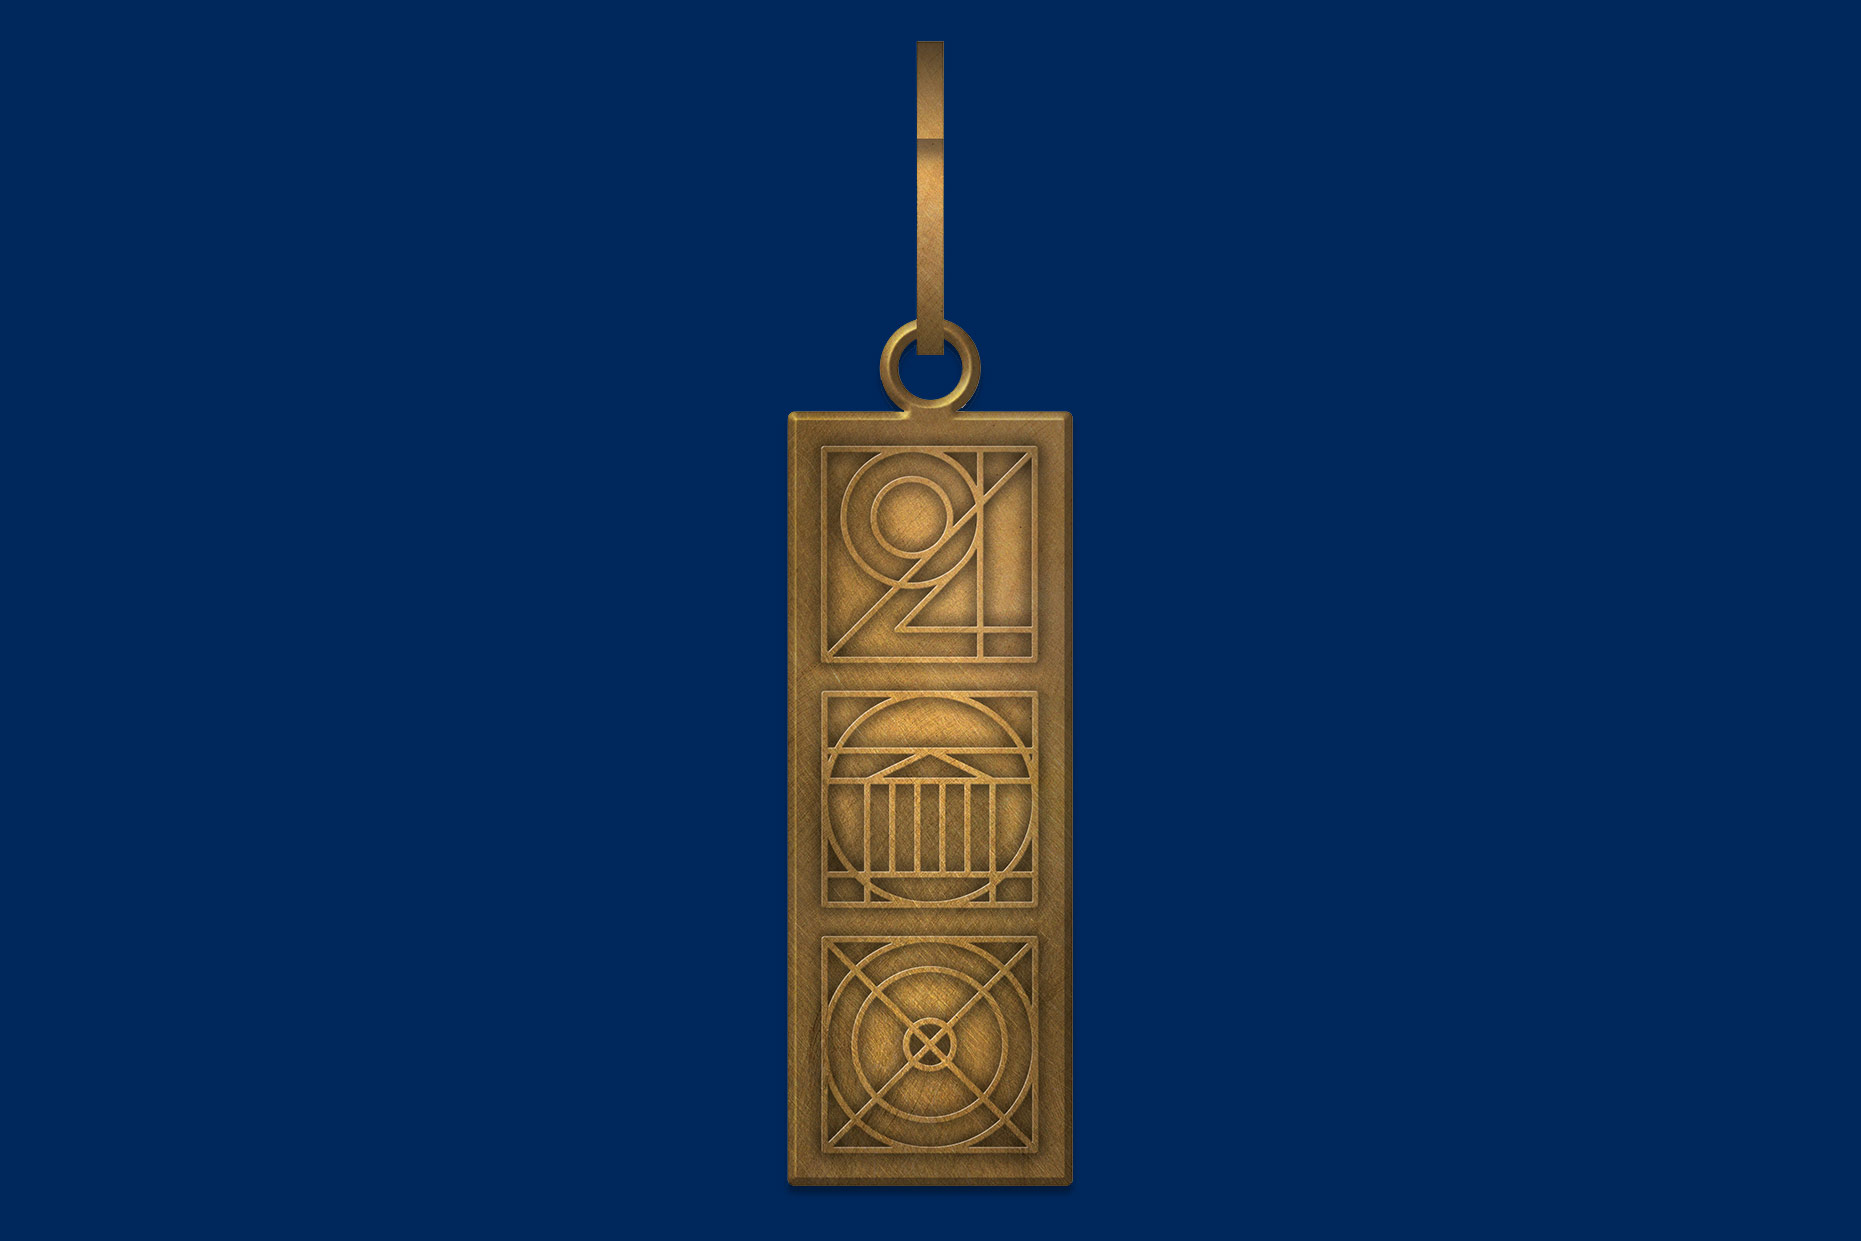 Each graduation gown will feature the commemorative zipper pull shown above. (Images courtesy of University of Virginia Office of Communications.)